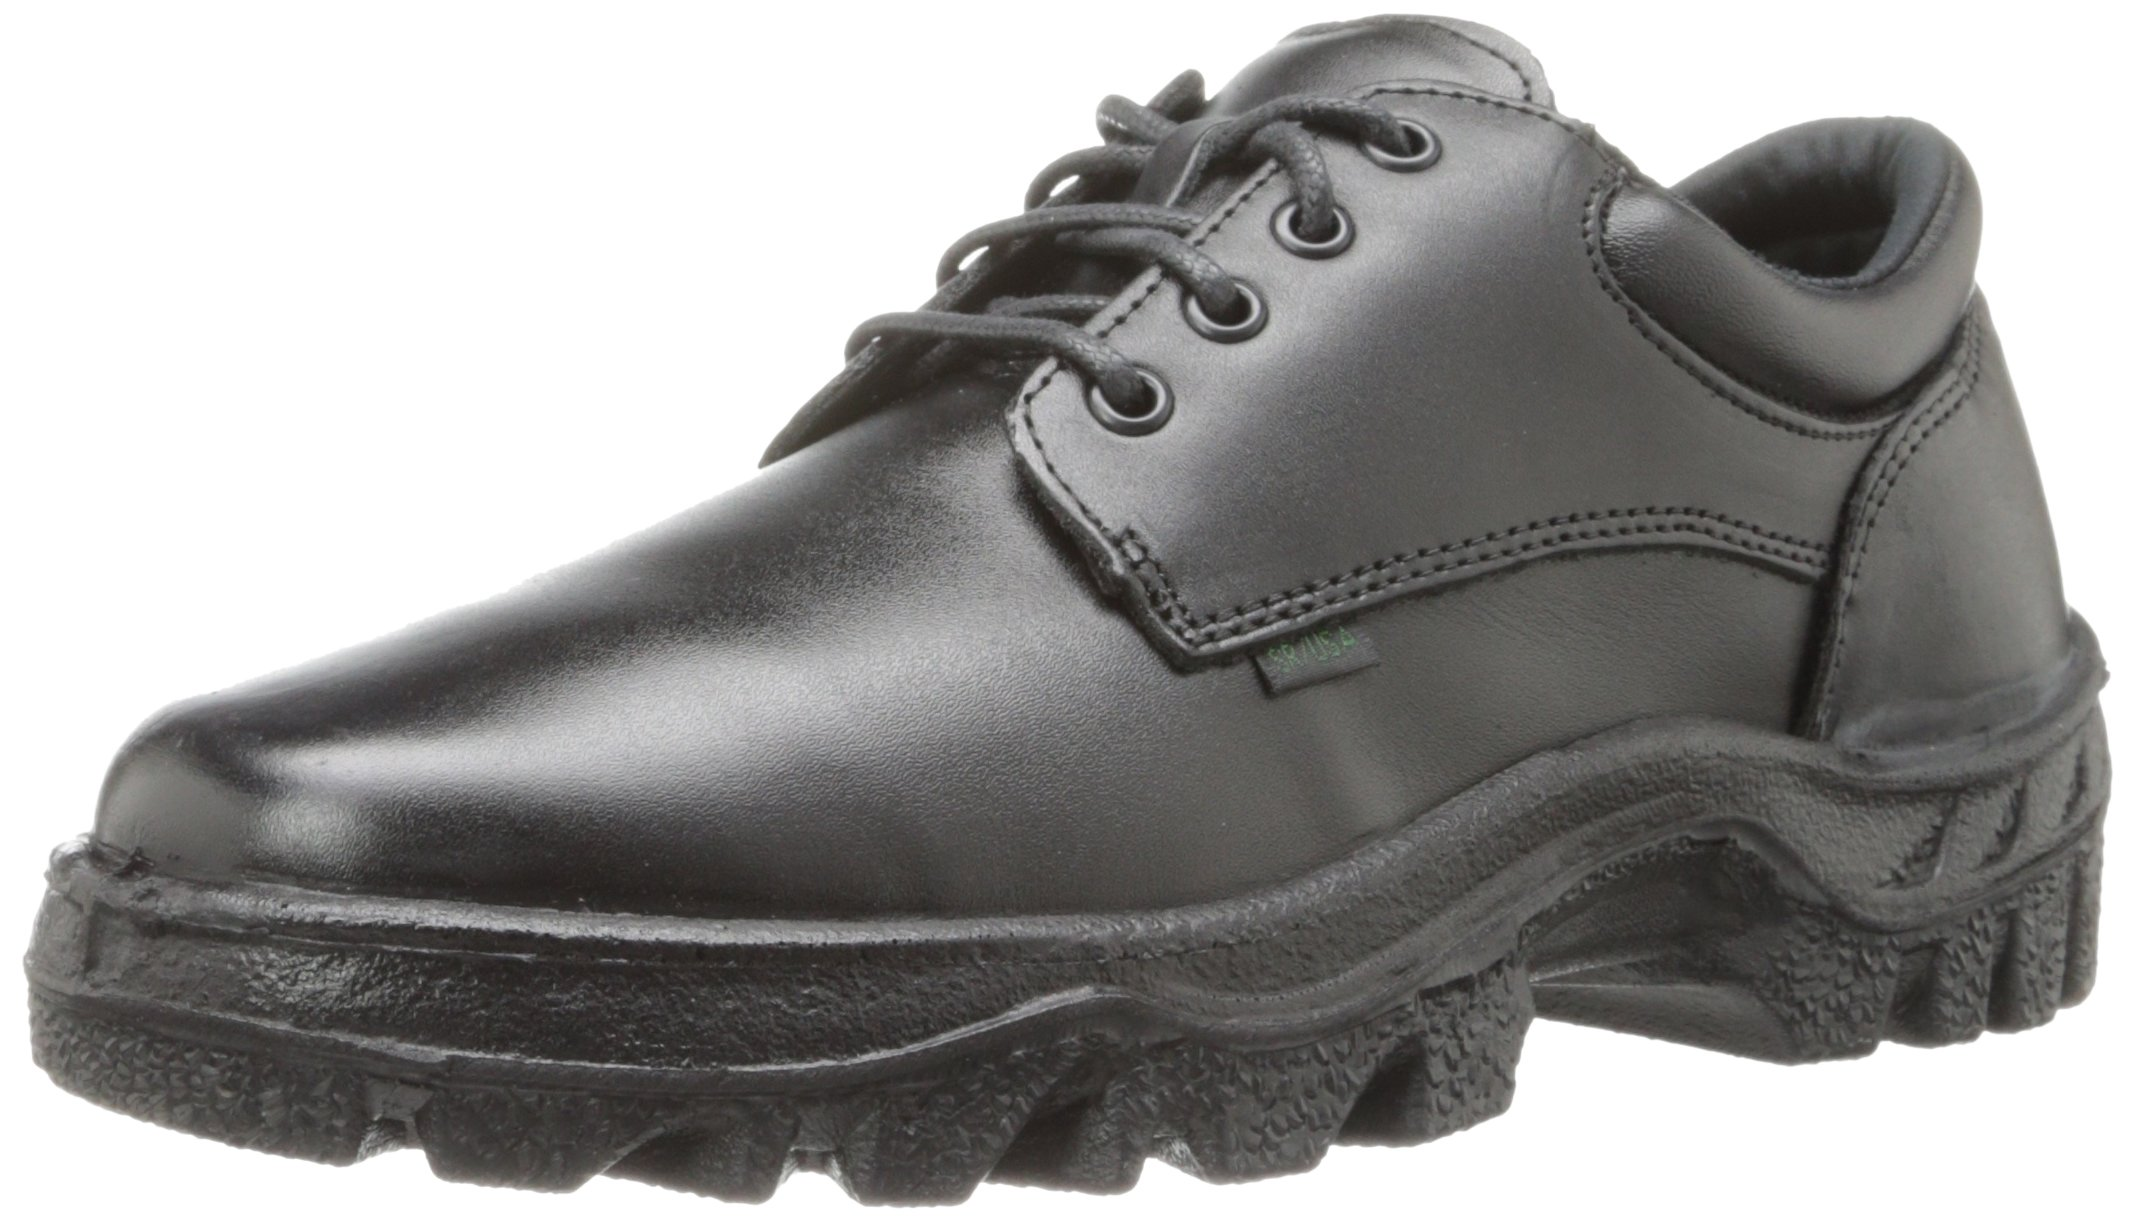 Rocky Men's Postal TMC Oxford Work Boot,Black,9.5 M US